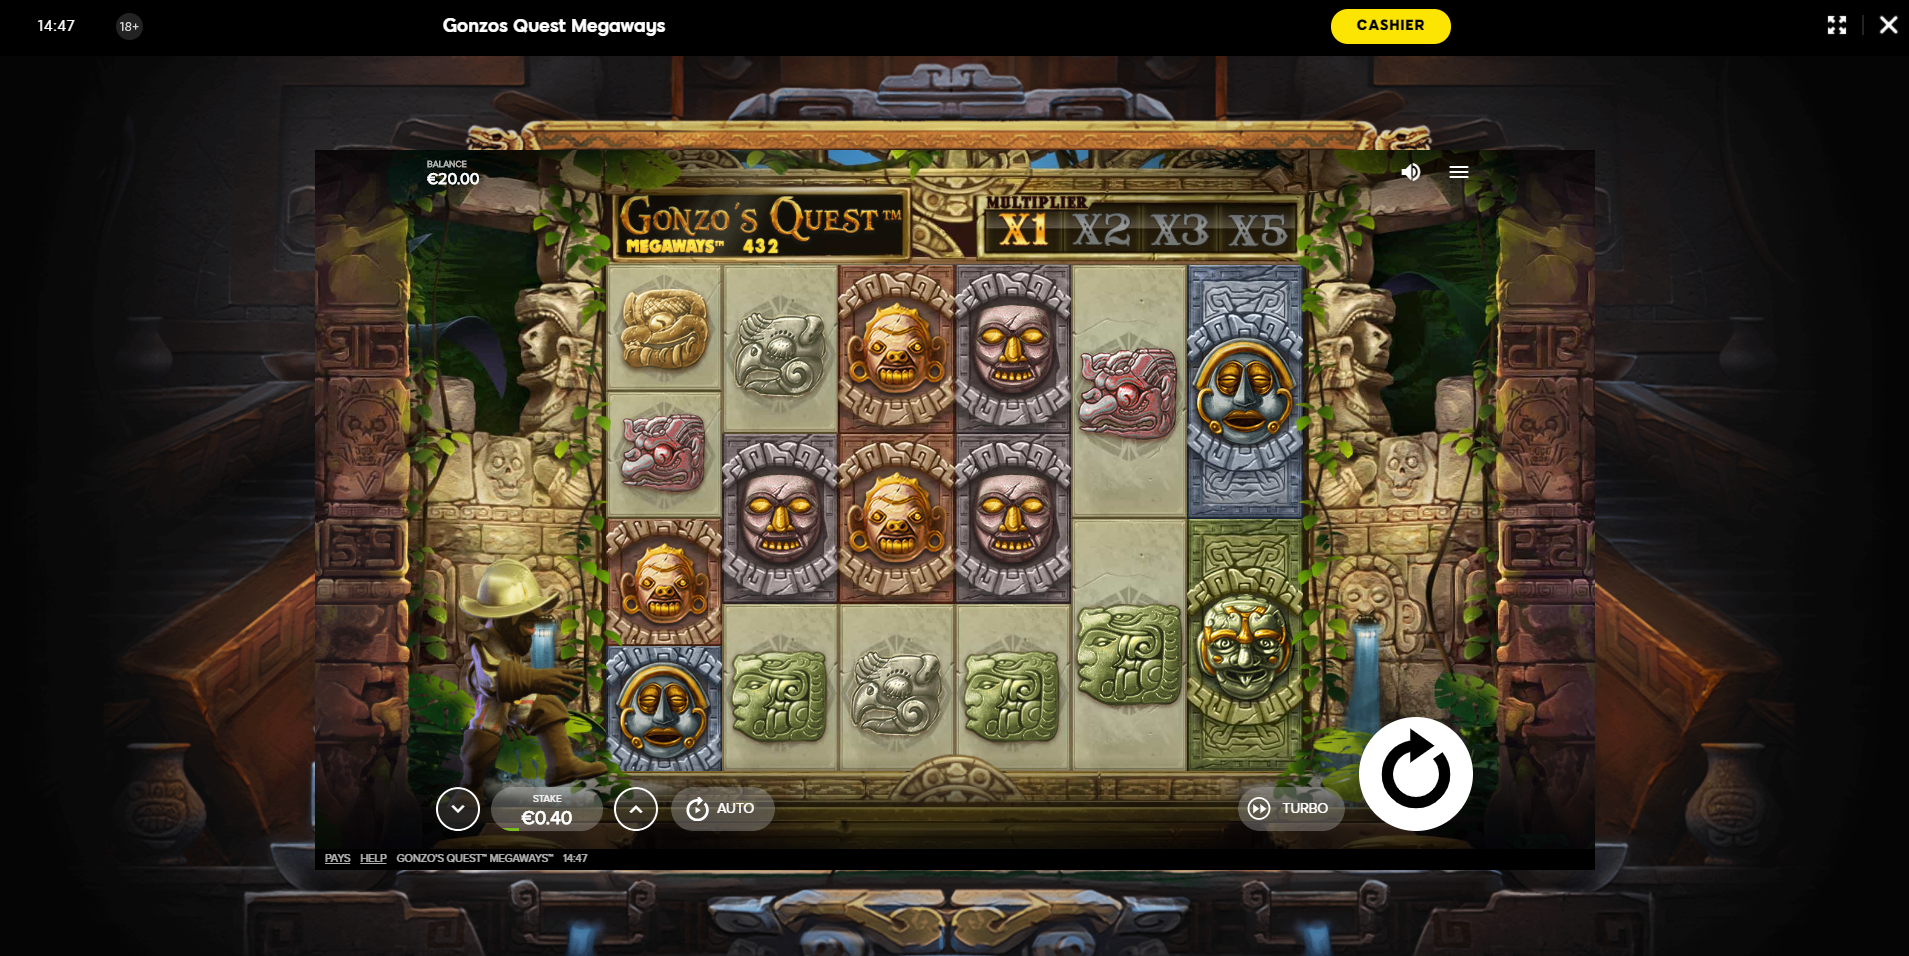 gonzo's quest megaways netent red tiger gaming 888 casino